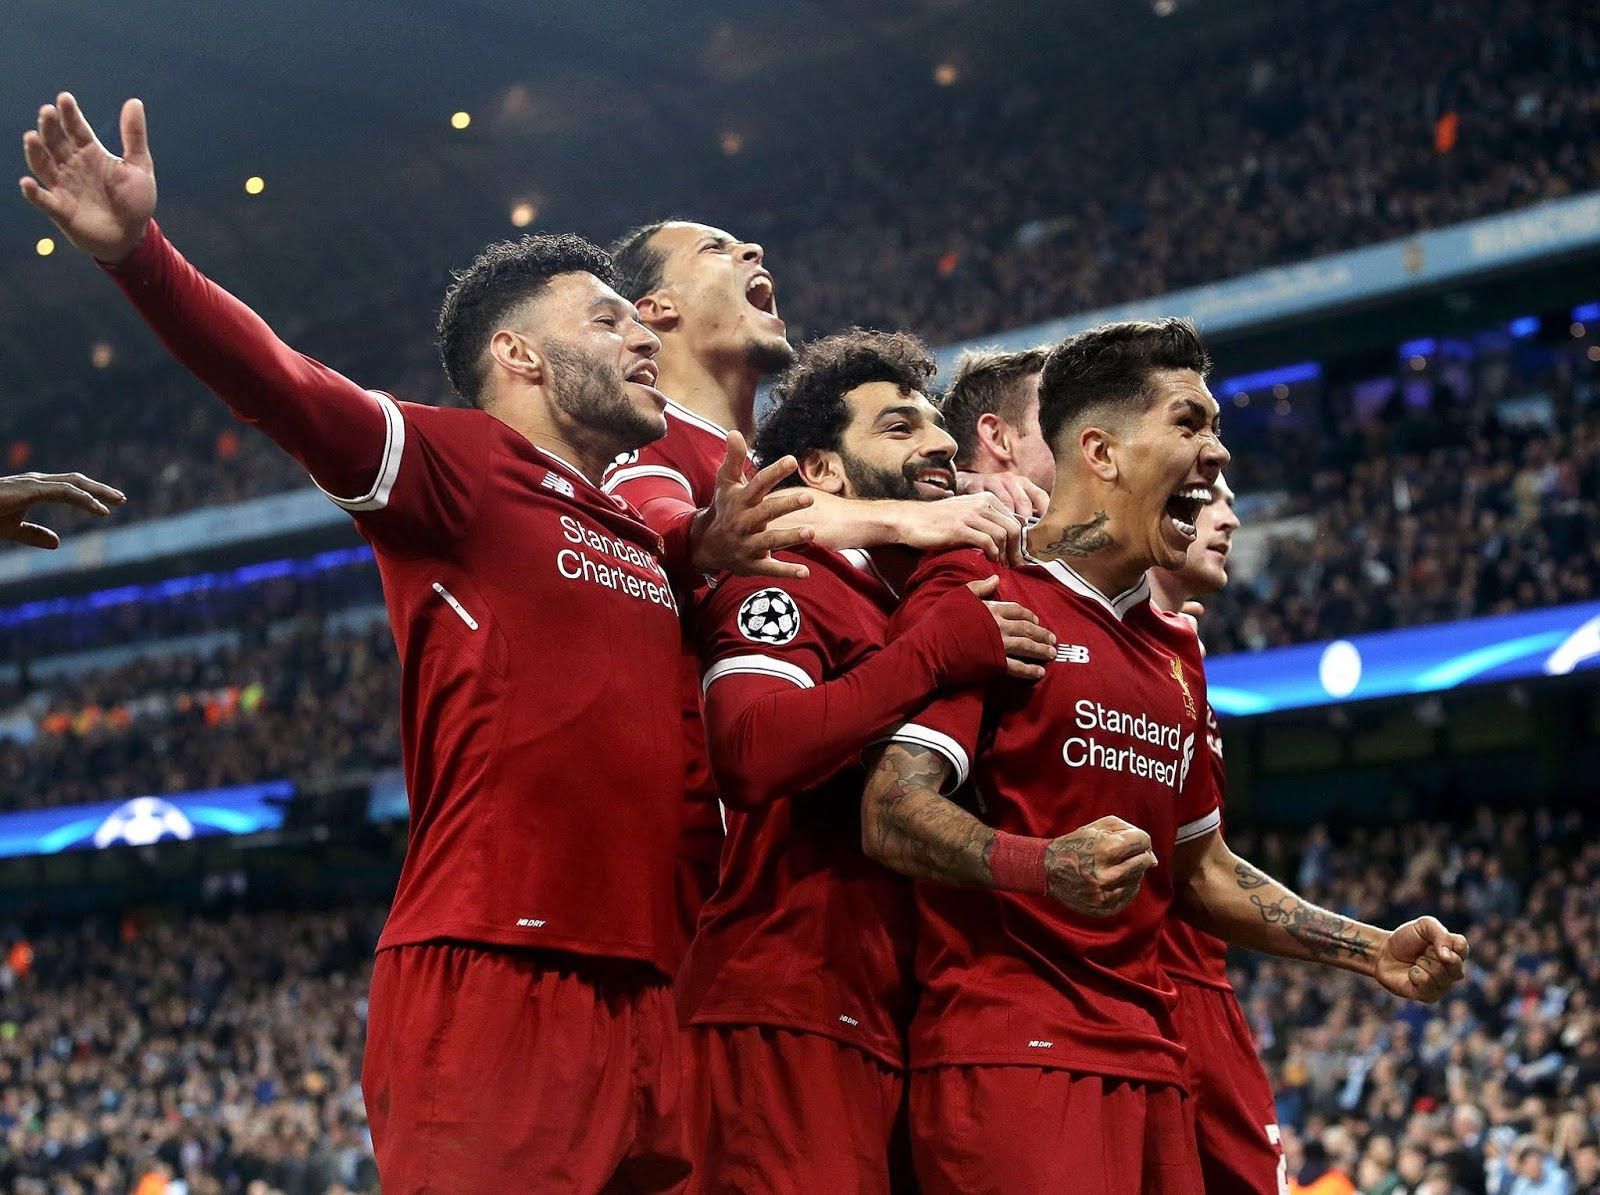 Liverpool players celebrating 5-2 win over Roma